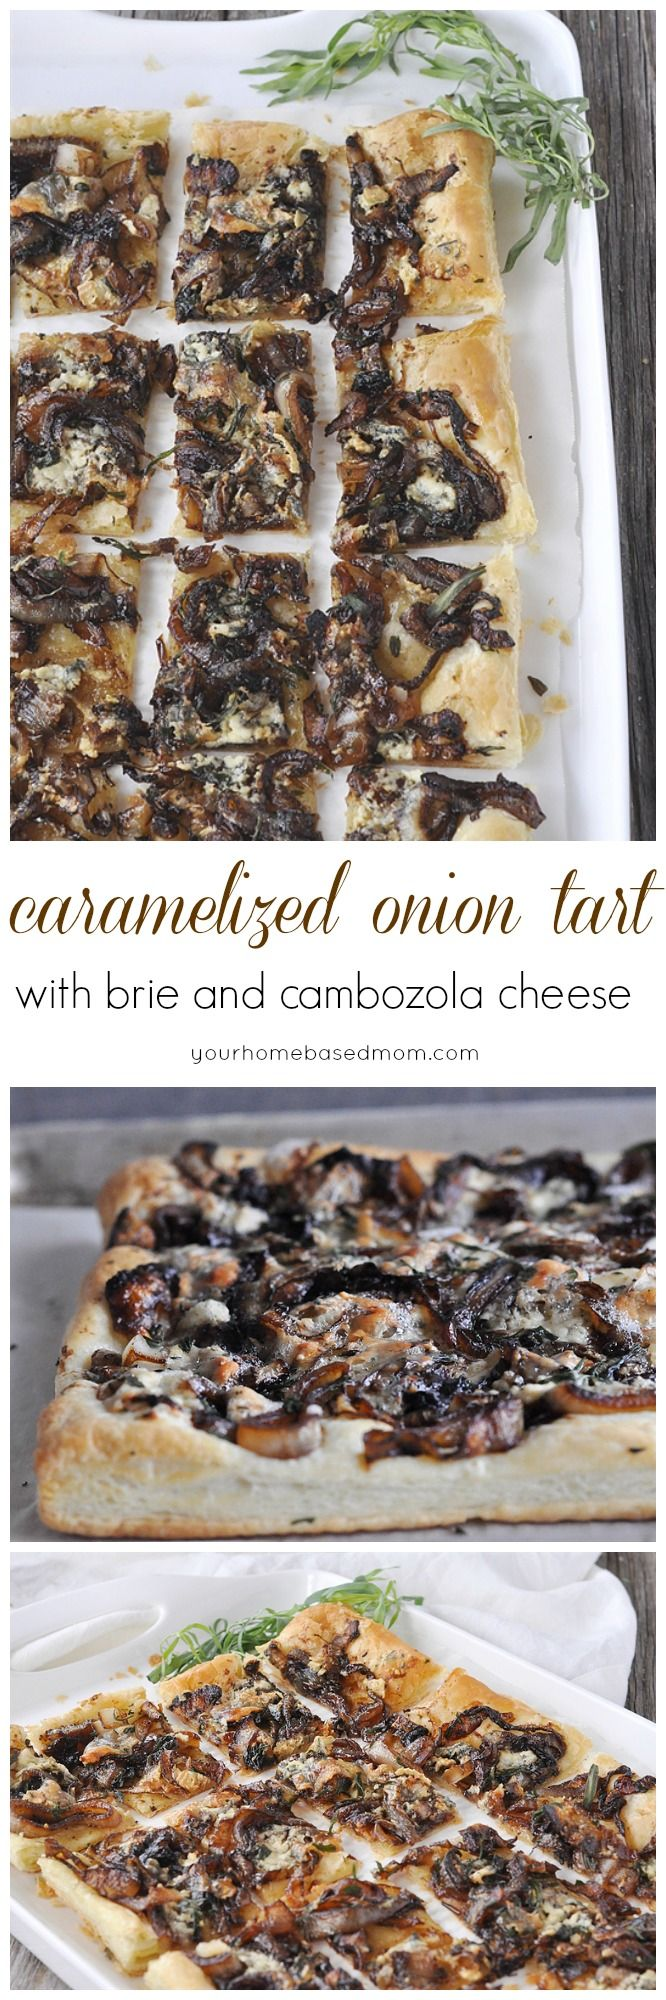 1000+ images about Tiny Bites on Pinterest | Appetizers, Olives and ...